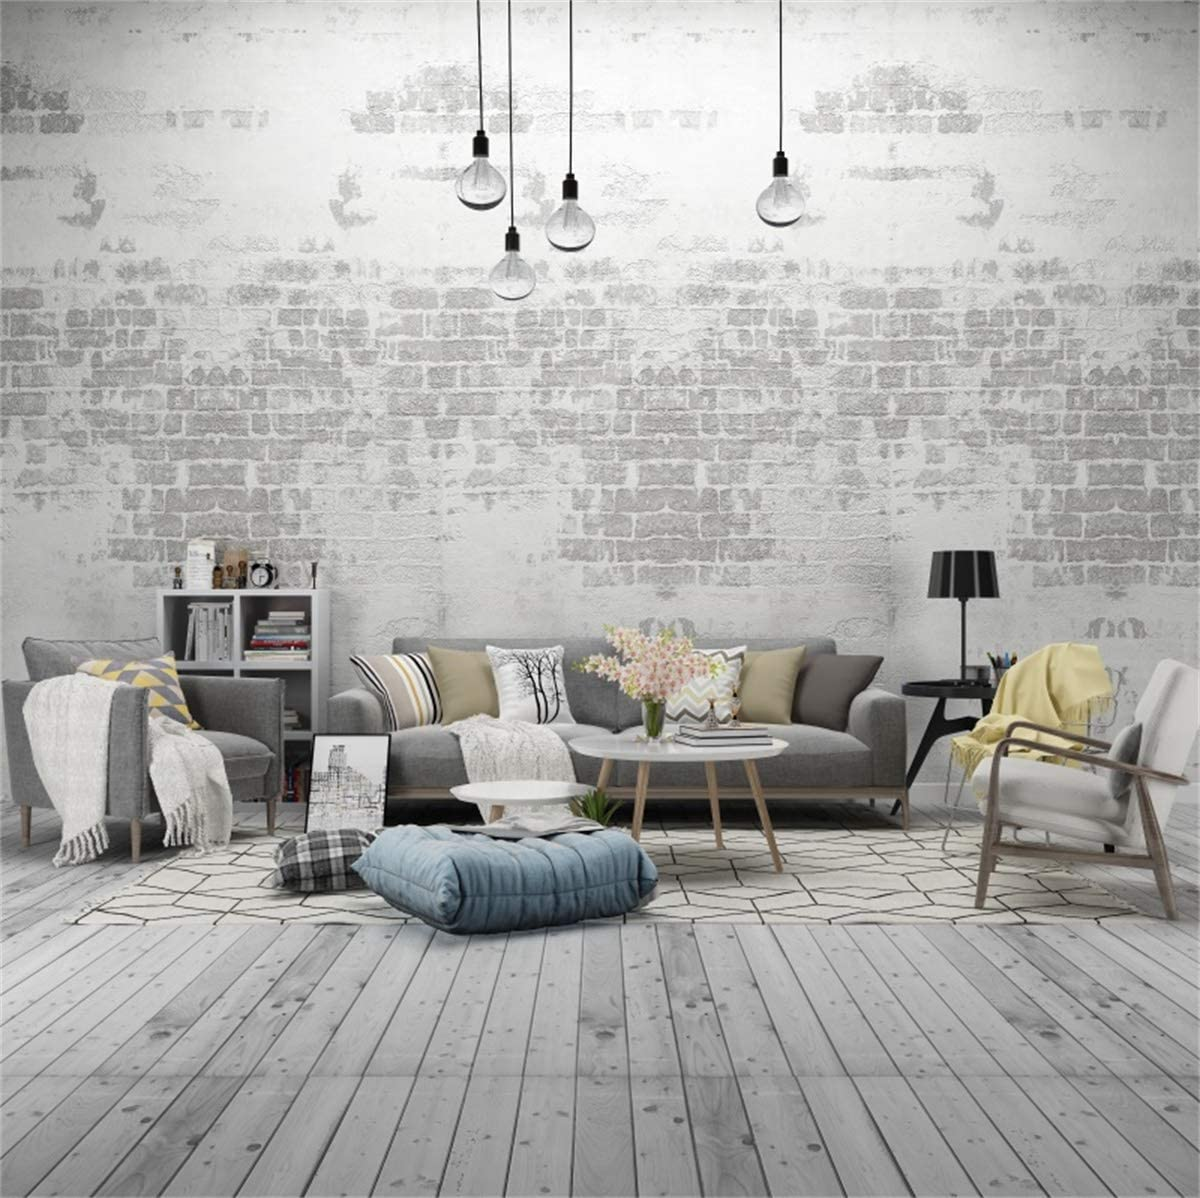 YEELE Retro Living Room Photography Backdrop 10x10ft Cozy Sofa Tea Table Combination Background Modern House and Home Design Interior Apartment Kids Adult Portrait Photo Studio Props